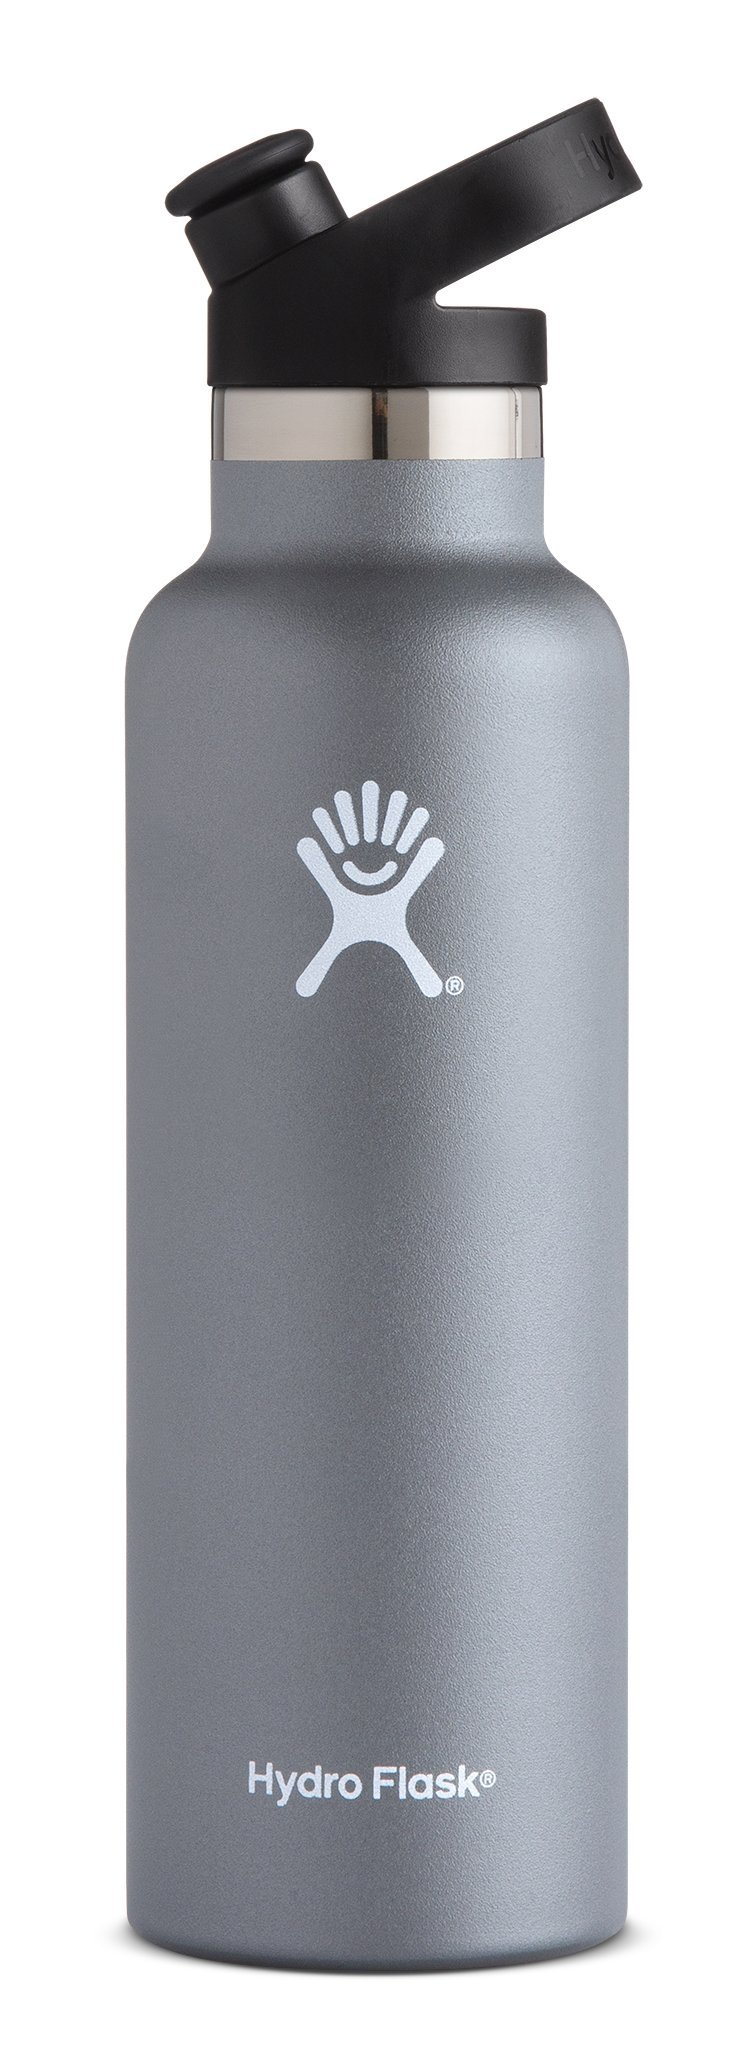 Hydro Flask 21 oz Double Wall Vacuum Insulated Stainless Steel Sports Water Bottle, Standard Mouth with BPA Free Sport Cap, Graphite